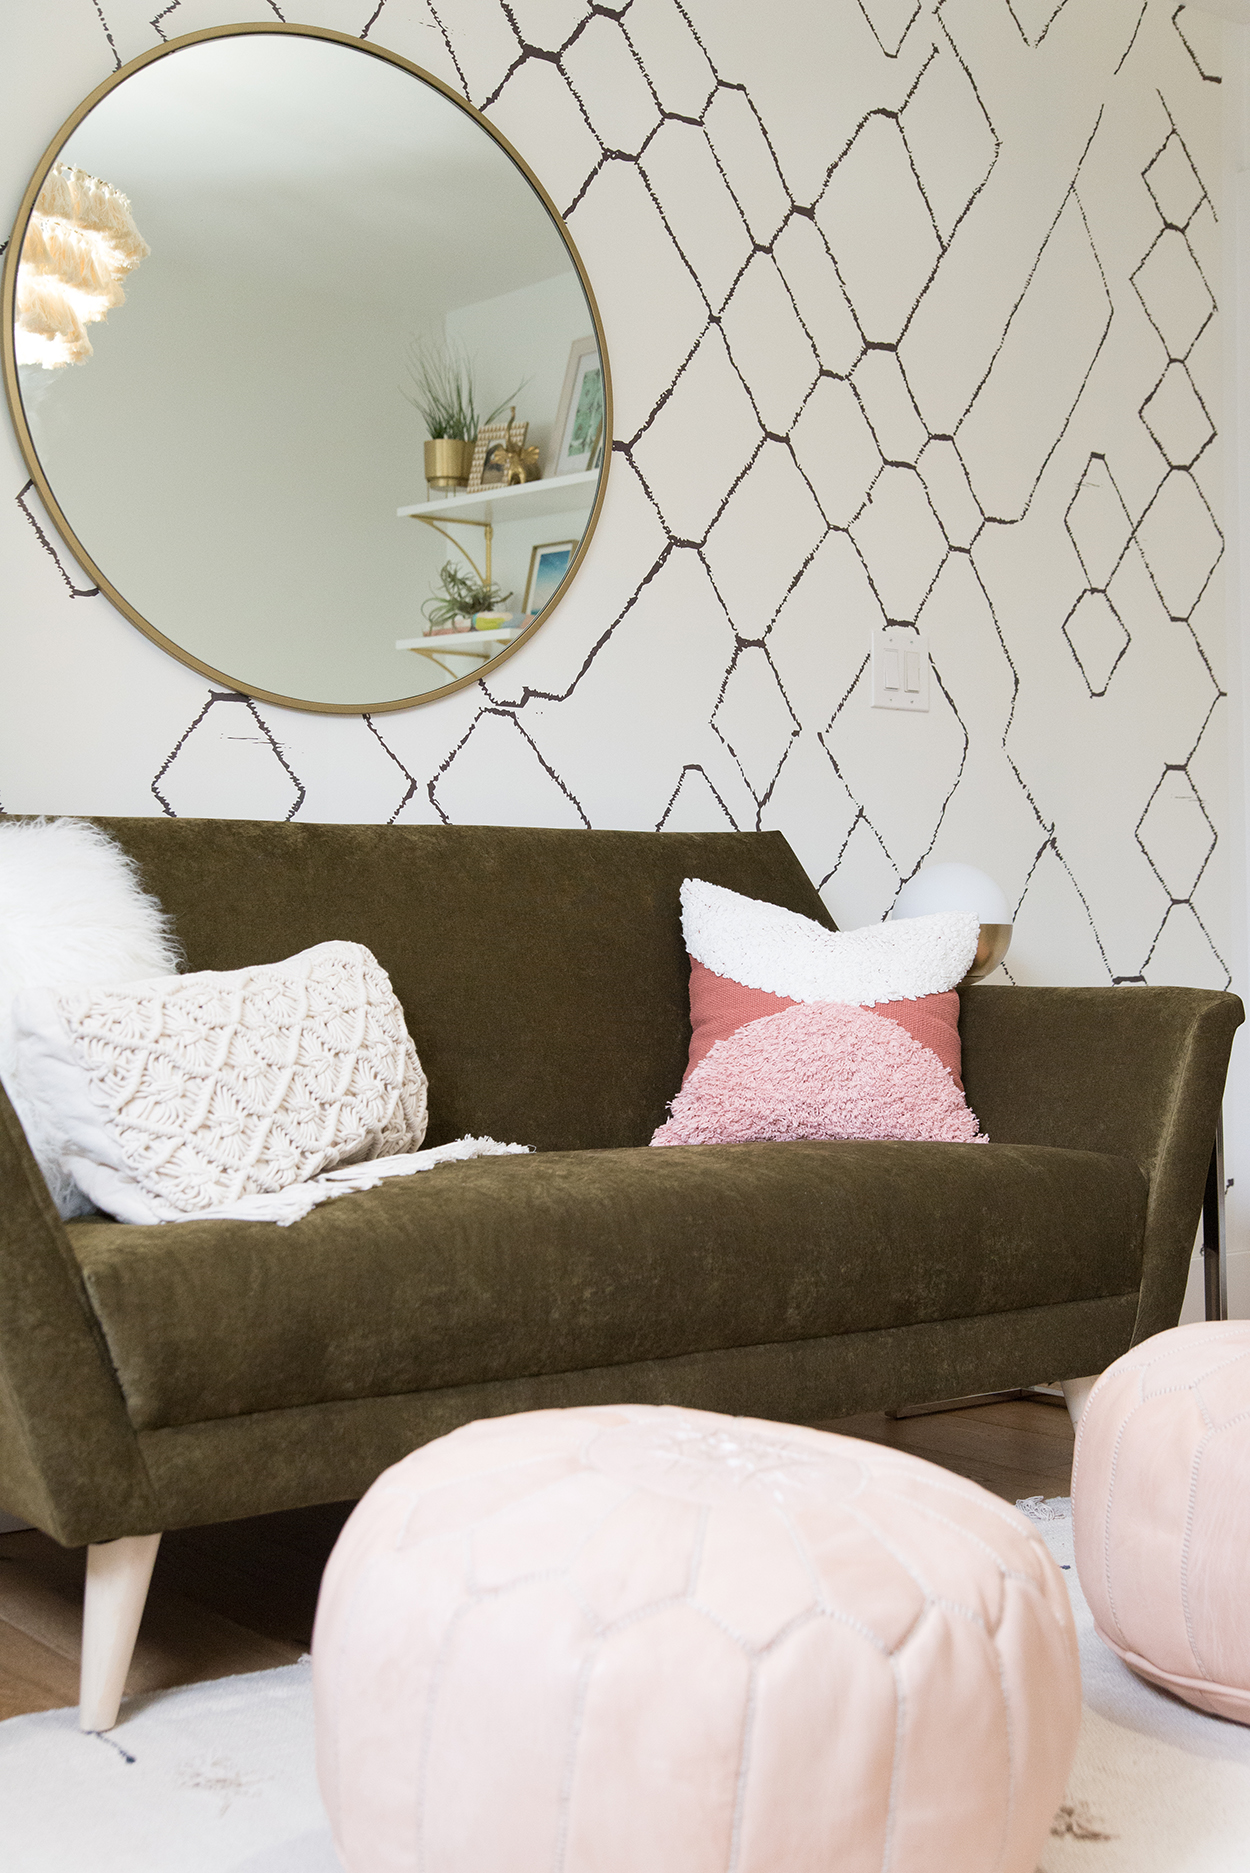 A geometric wallpapered wall with round mirror and a green couch